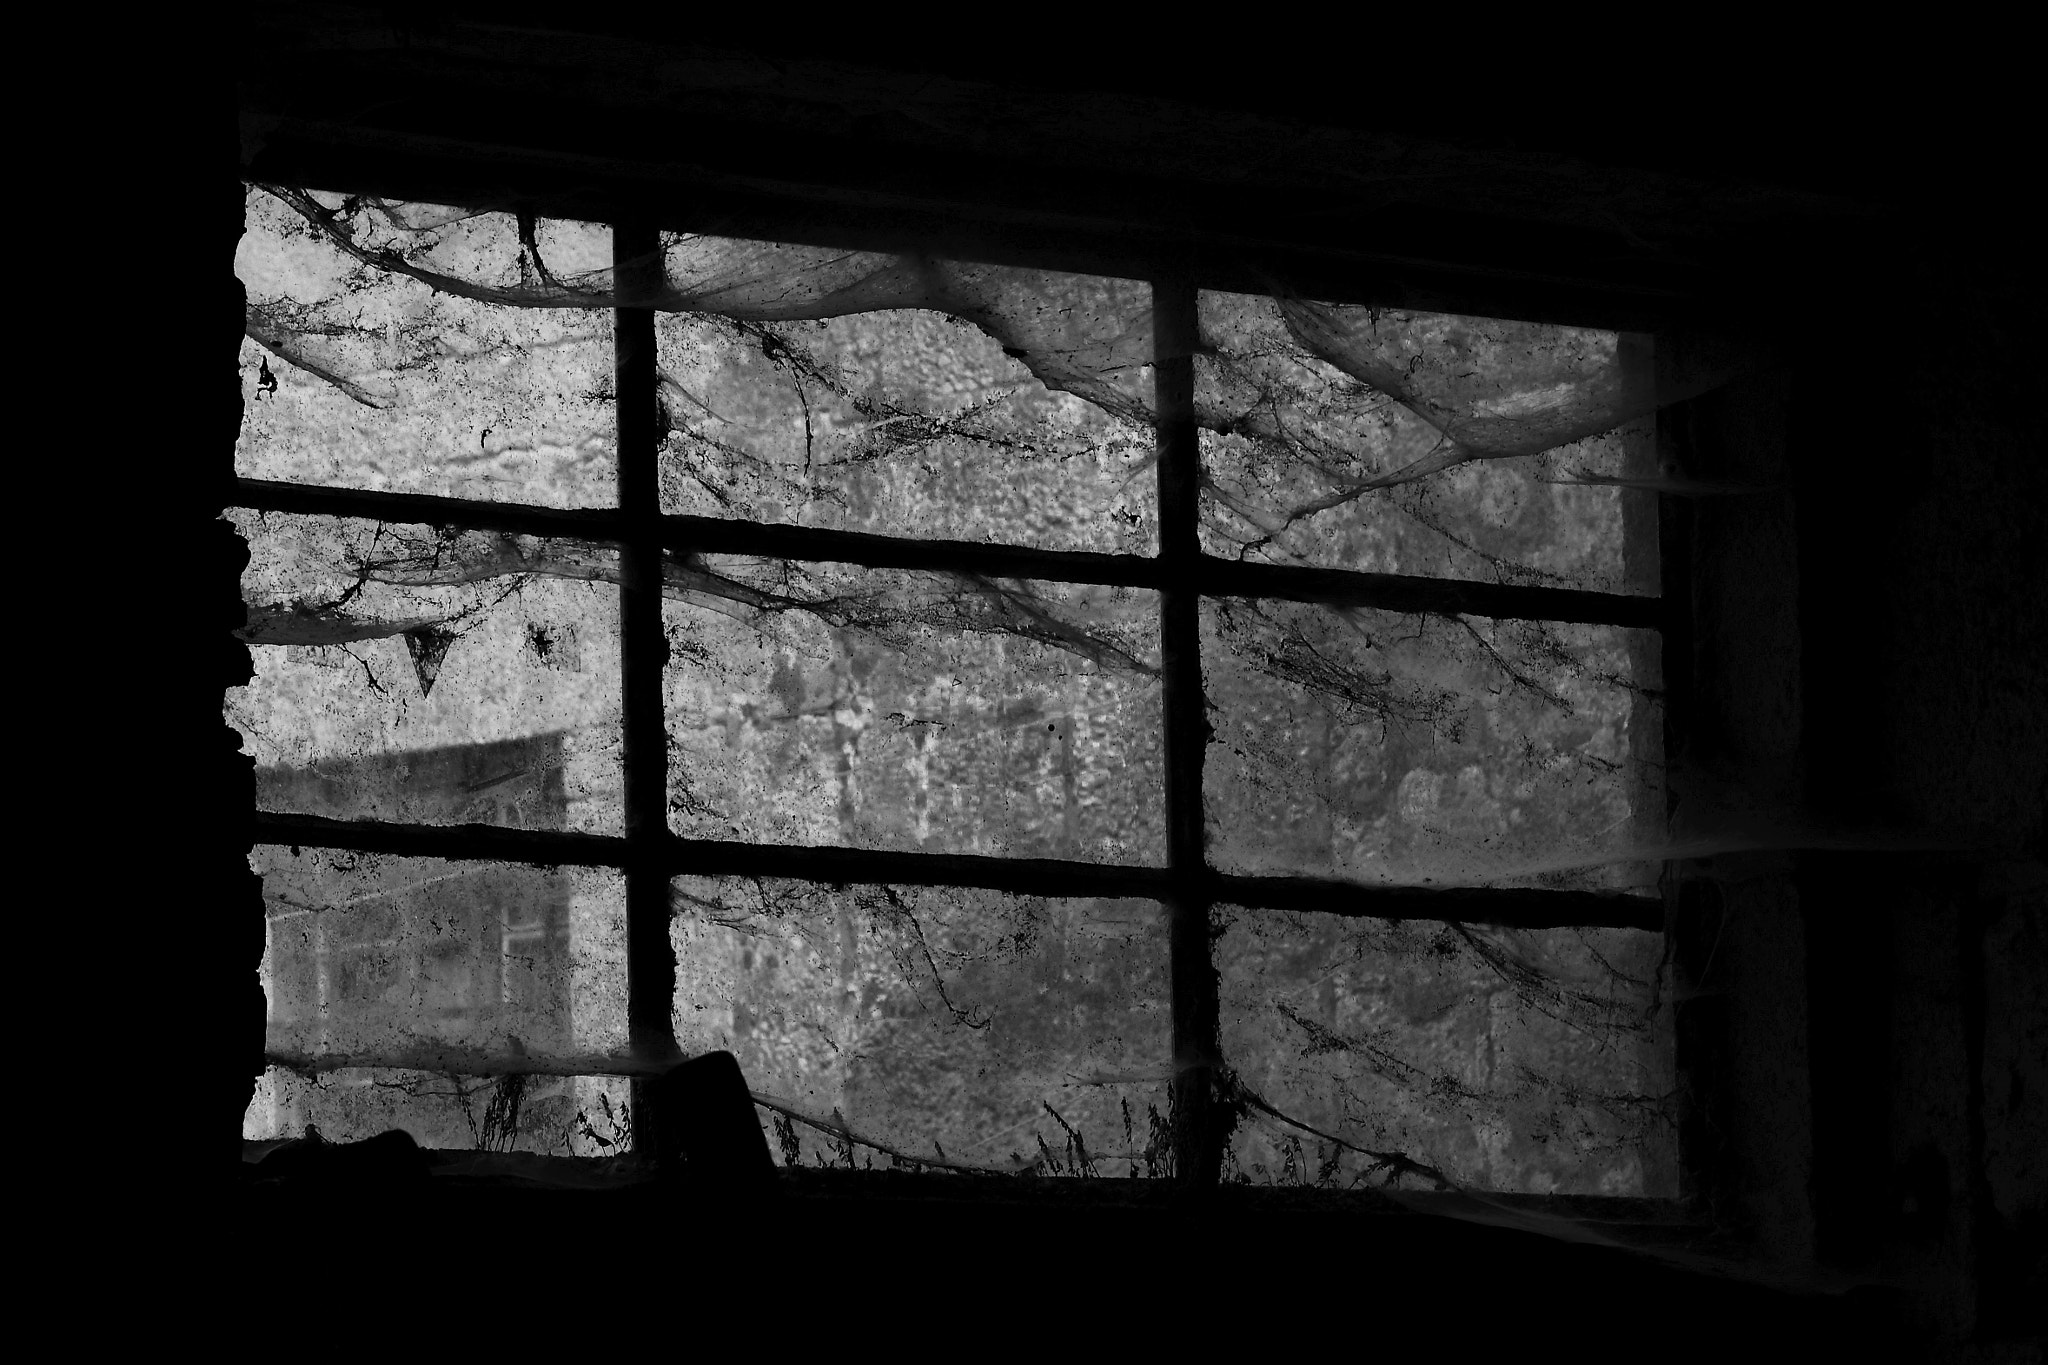 Photograph The time window. by Miguel Silva on 500px